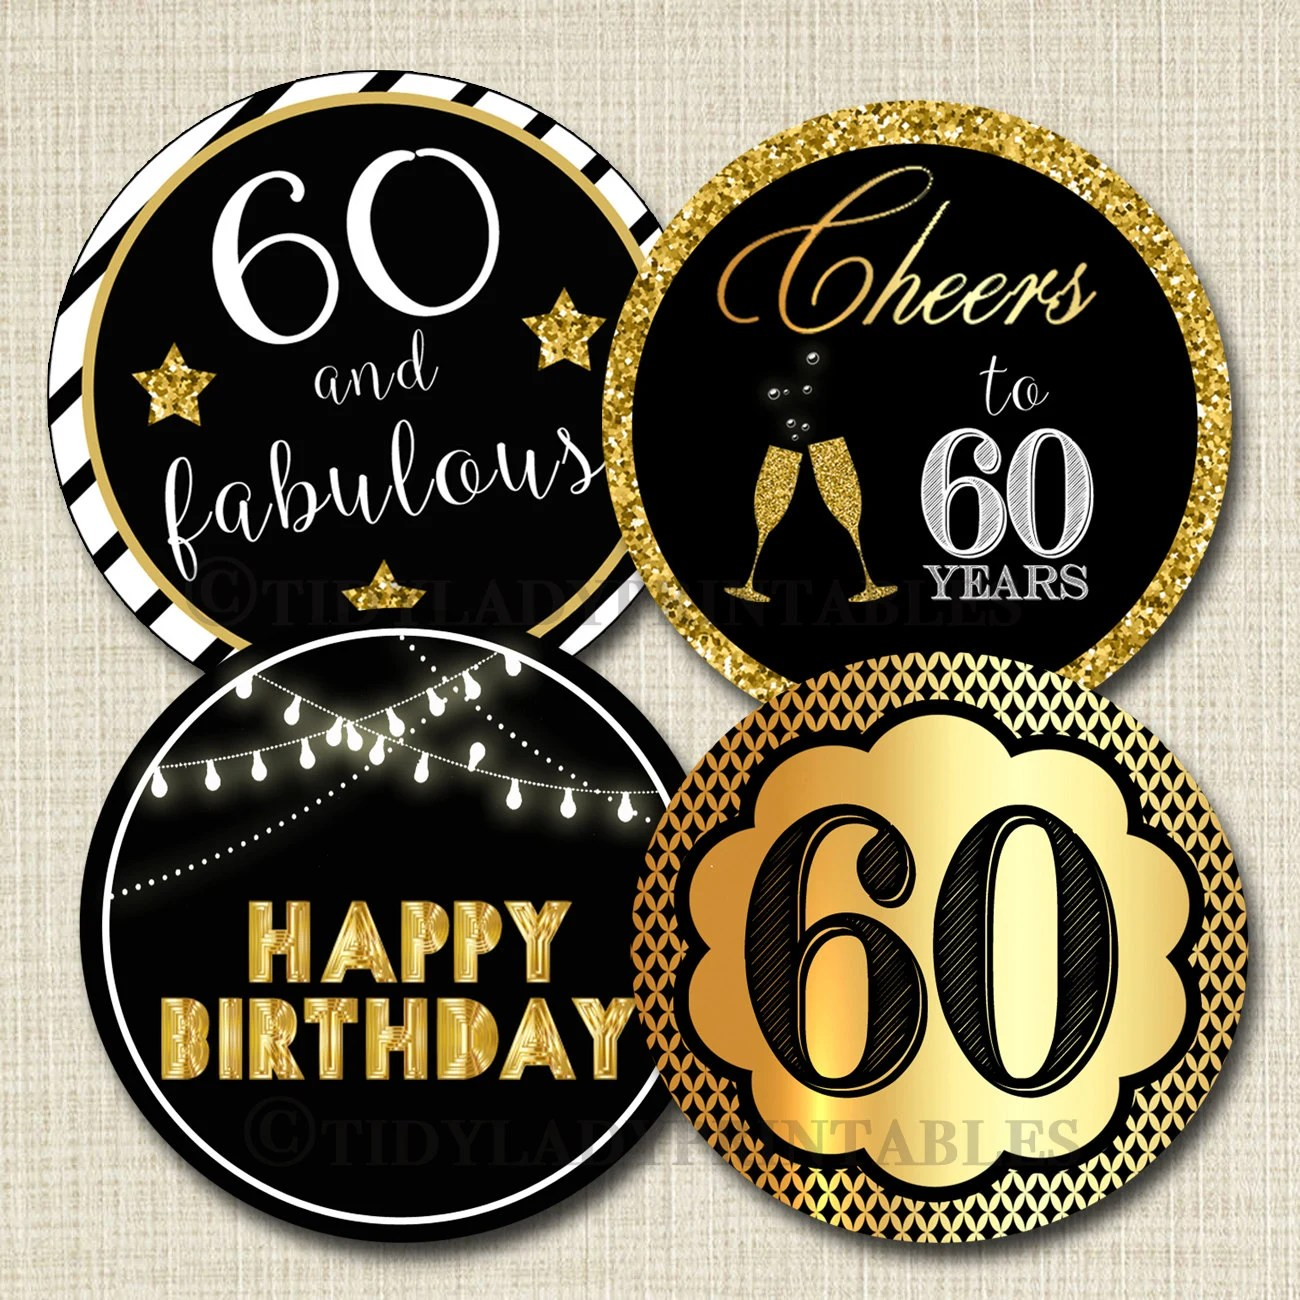 60th Birthday Cupcake Toppers Printable Cheers To Sixy Years Etsy